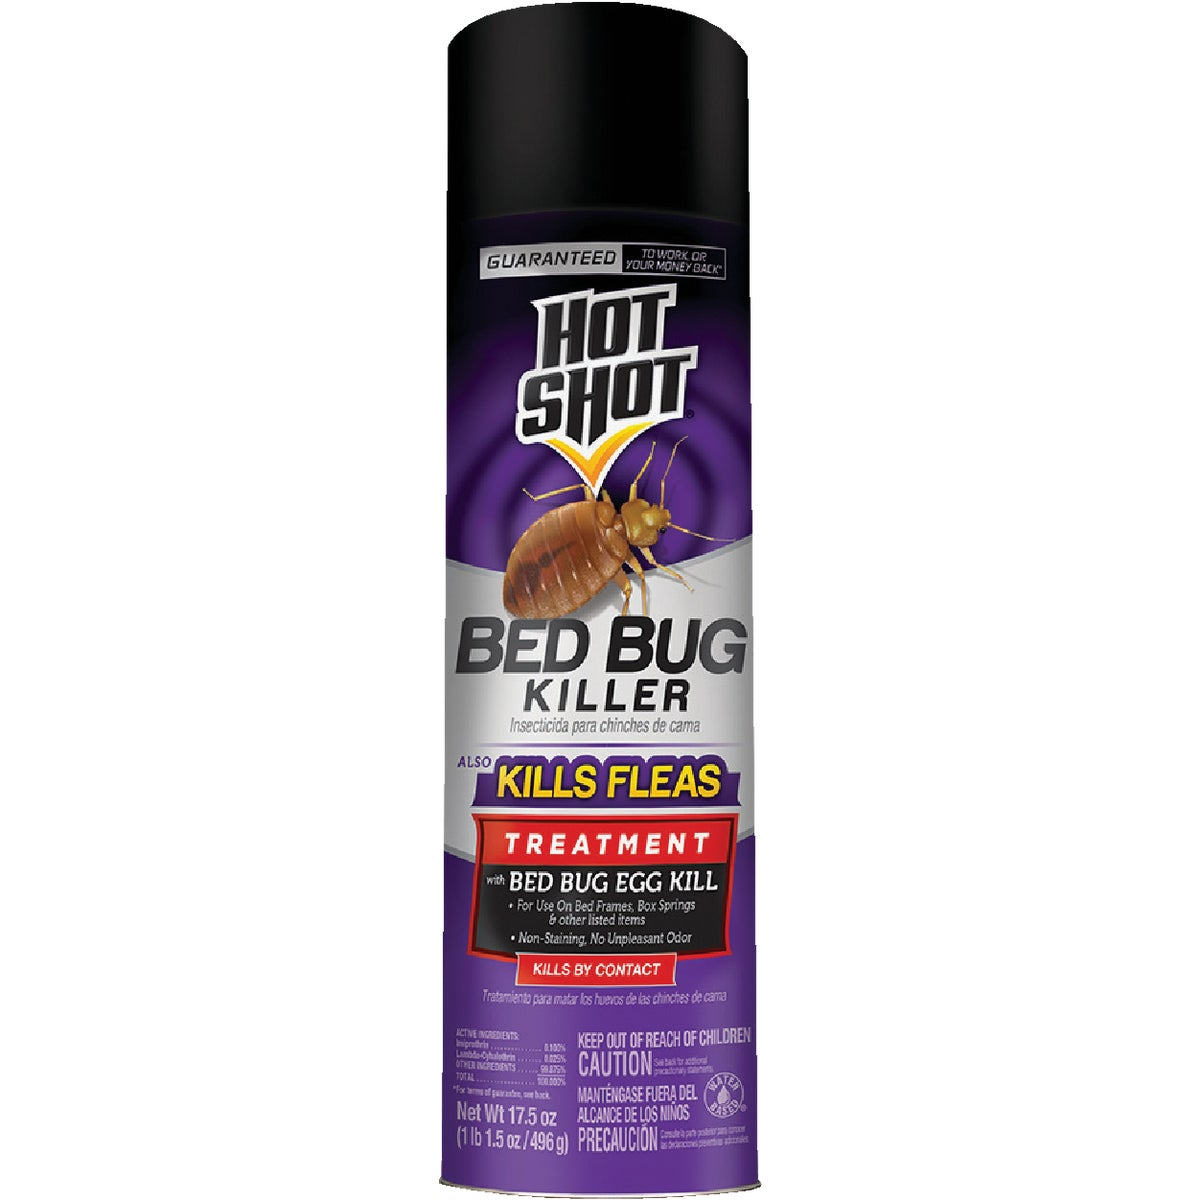 17.5OZ BEDBUG KILLER - HG-96114 by United Industries Co